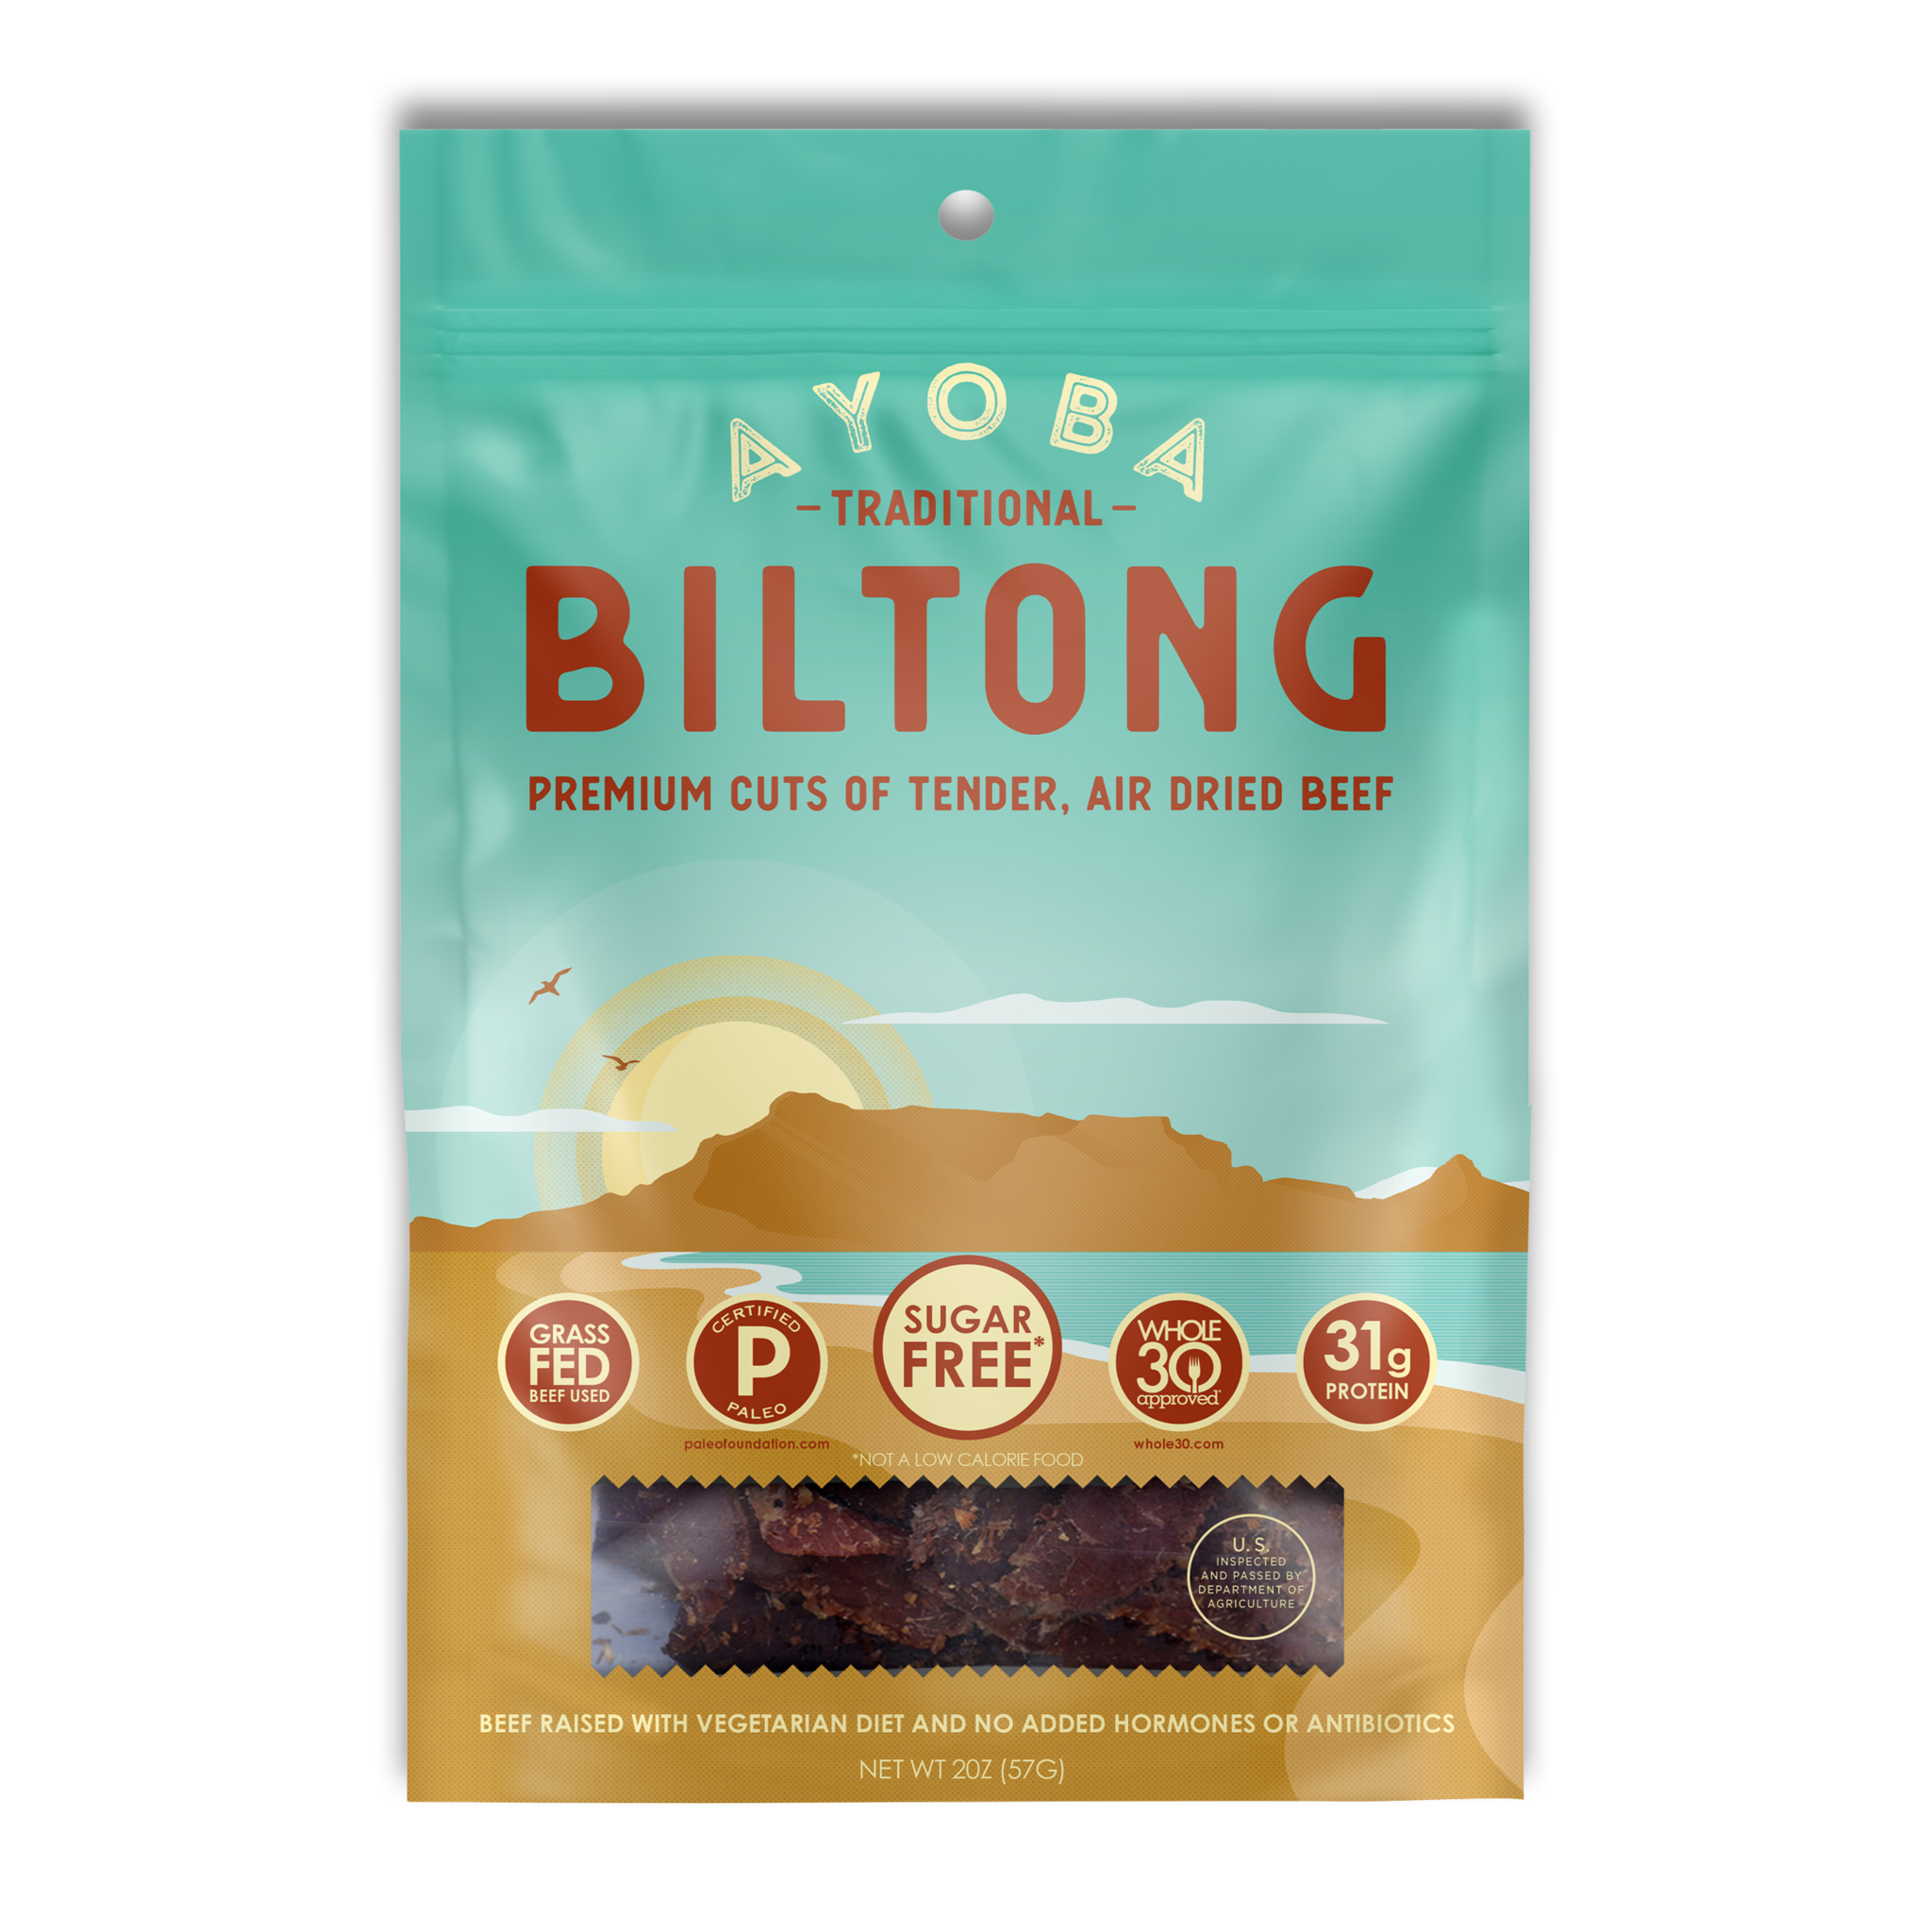 Ayoba Grass Fed Beef Biltong Traditional - Ayoba - Certified Paleo, Keto Certified by the Paleo Foundation